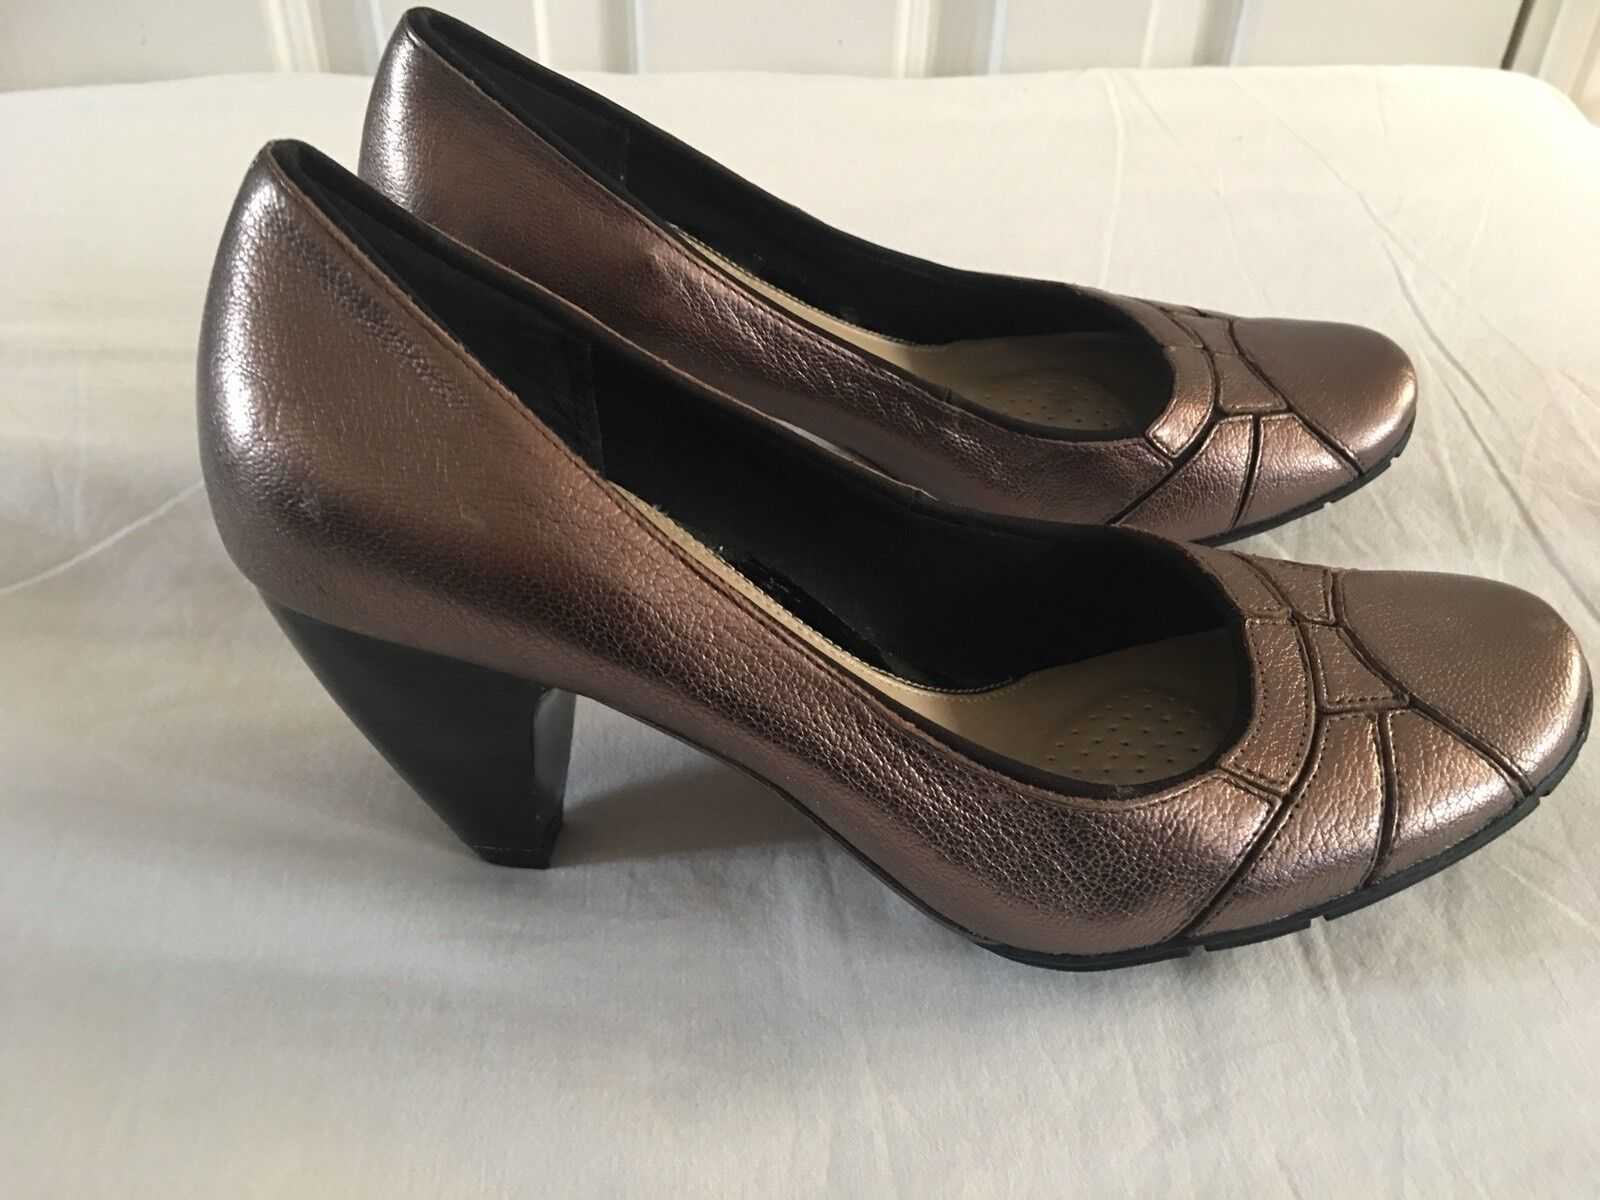 Clarks Softwear 360 degrees Bronze Metallic Leather Cone Heels size UK 4.5 New